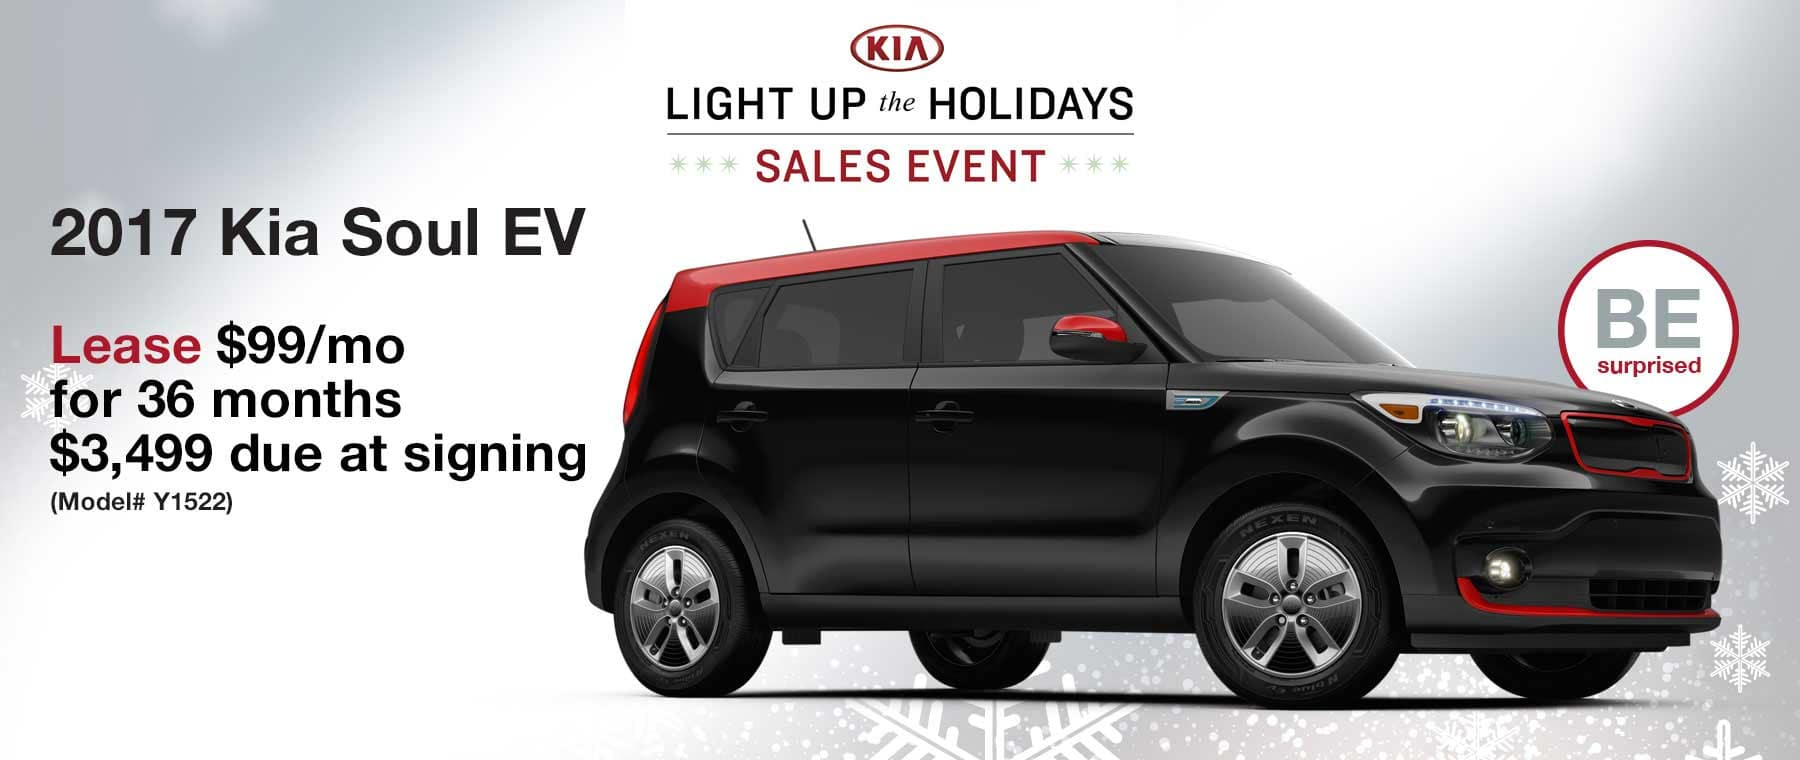 Lease a 2017 Kia Soul EV for $99 per month with $3,499 due at signing